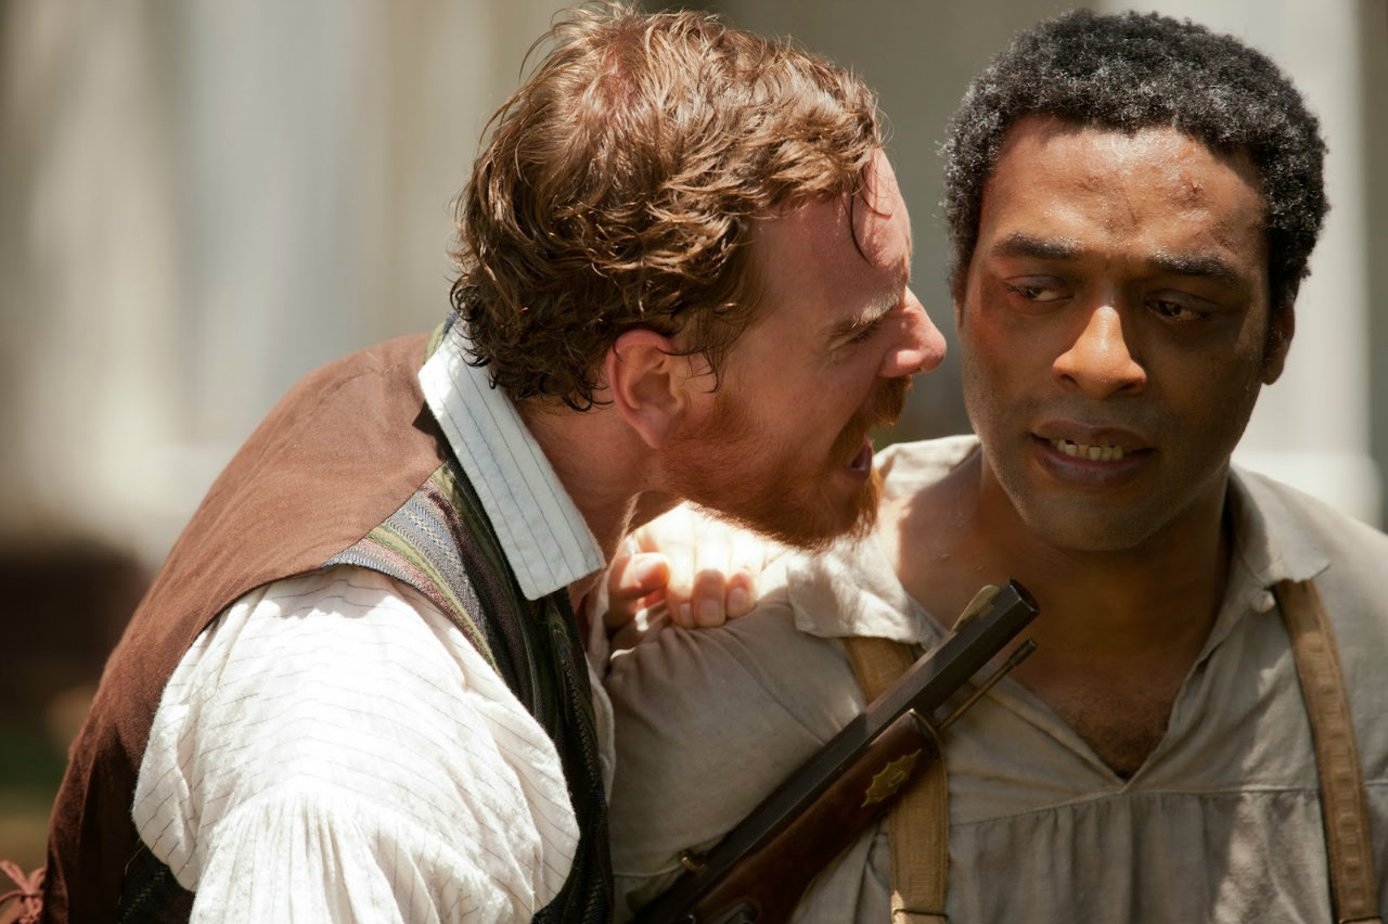 an analysis of the portrayal of slavery in the help 12 years a slave and django unchained Cartoonish django unchained, on cruel whites but on the effect of slavery on a single black man in 12 years a slave that 12 years a slave is art.